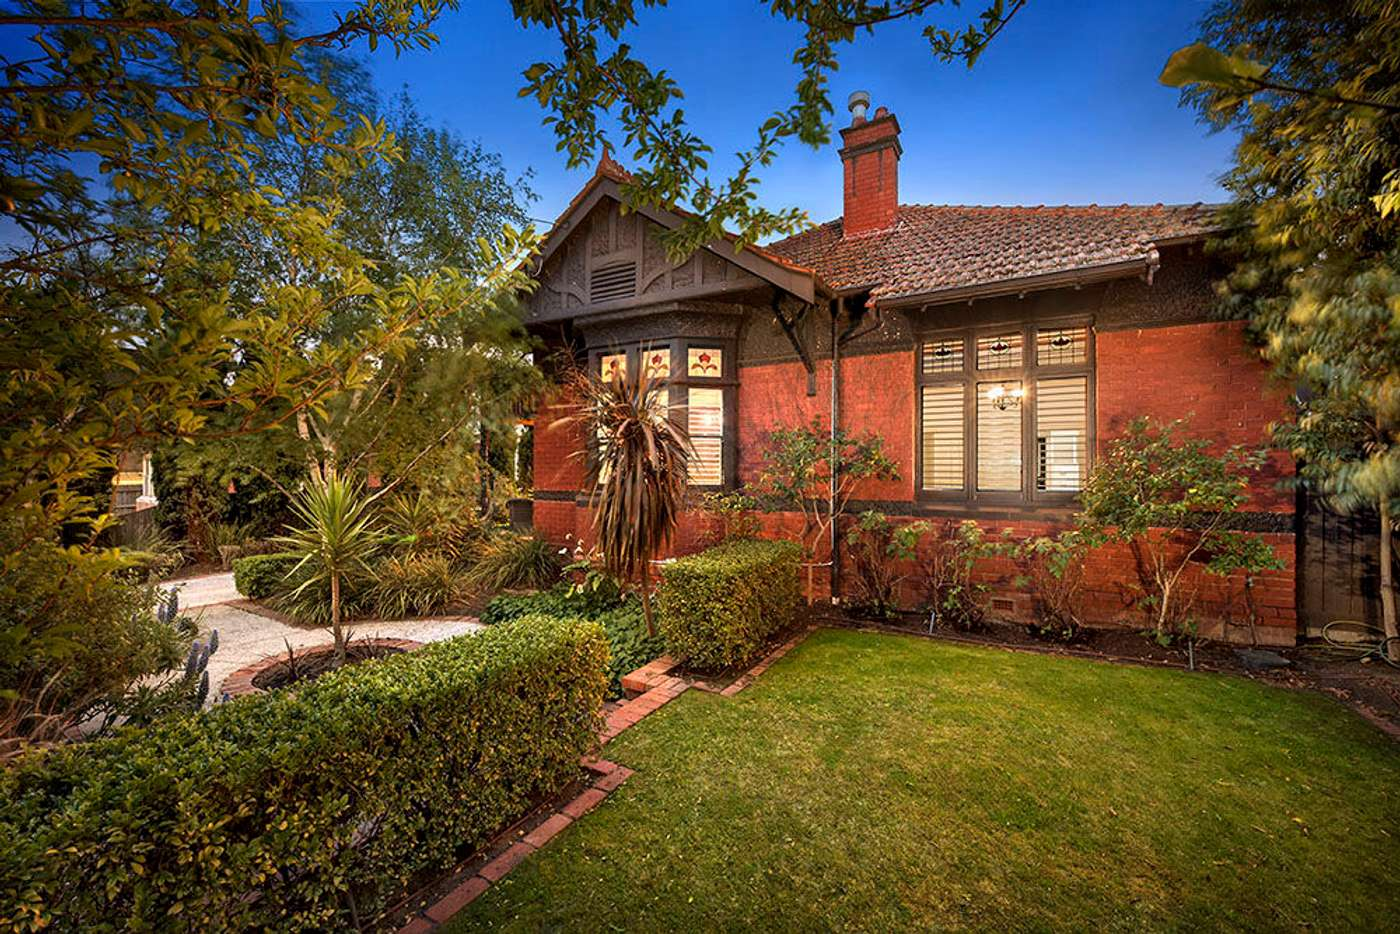 Main view of Homely house listing, 3 Talbot Avenue, St Kilda East VIC 3183